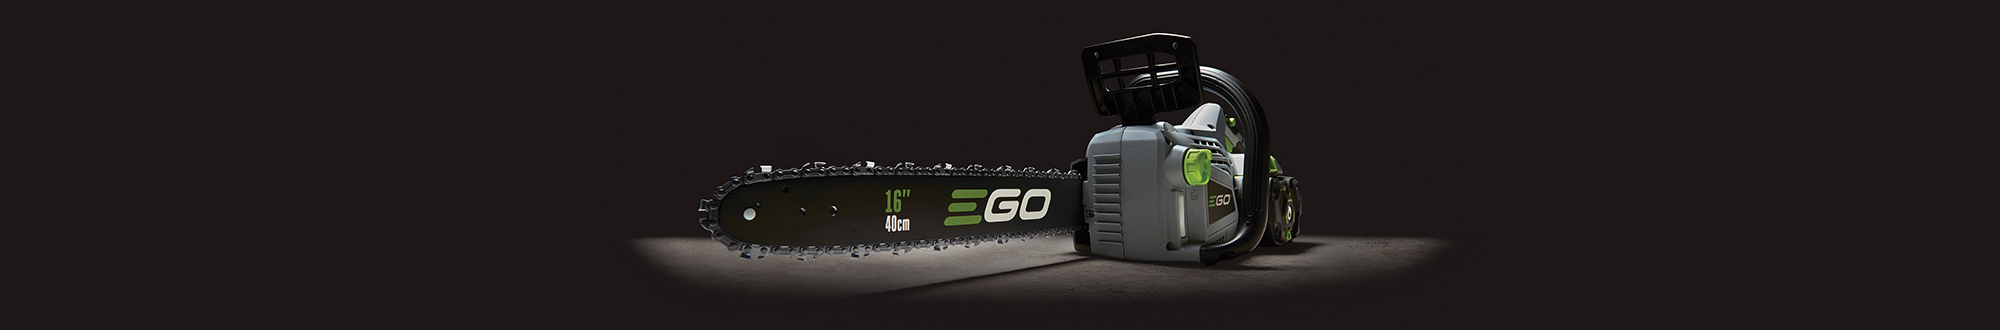 Ego Power Plus - Ego Power+  MOTOSEGHE